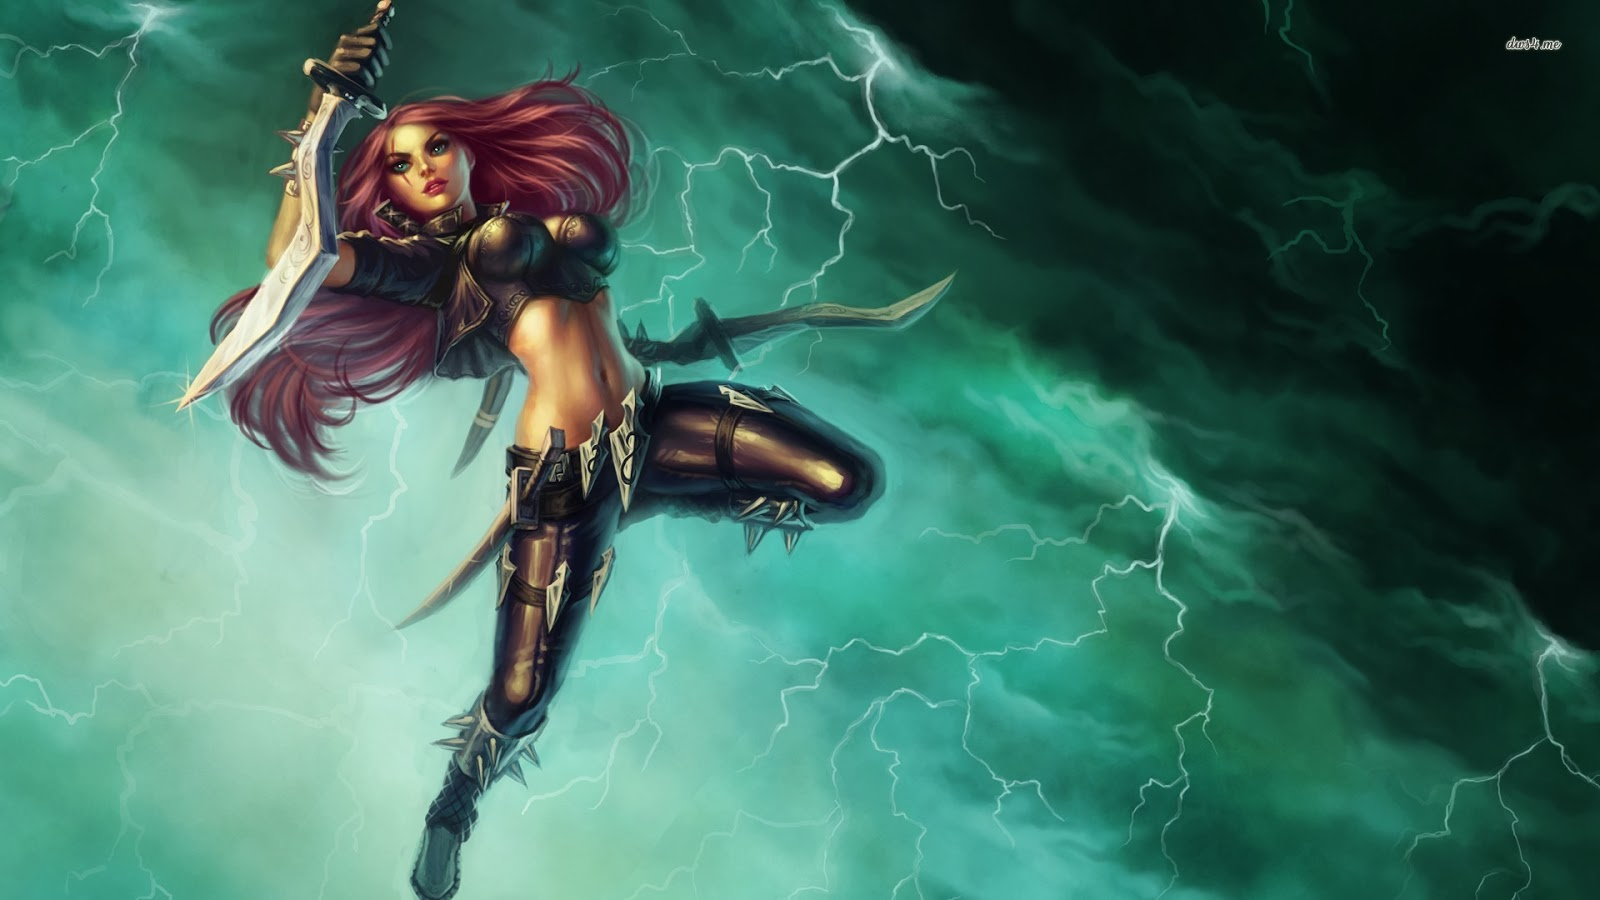 https://2.bp.blogspot.com/-bPVofsKd45c/Uwb5fxWZunI/AAAAAAAAB30/v7-3_pl52U8/s1600/Katarina-League-of-Legends-Wallpaper-full-HD-20.jpg